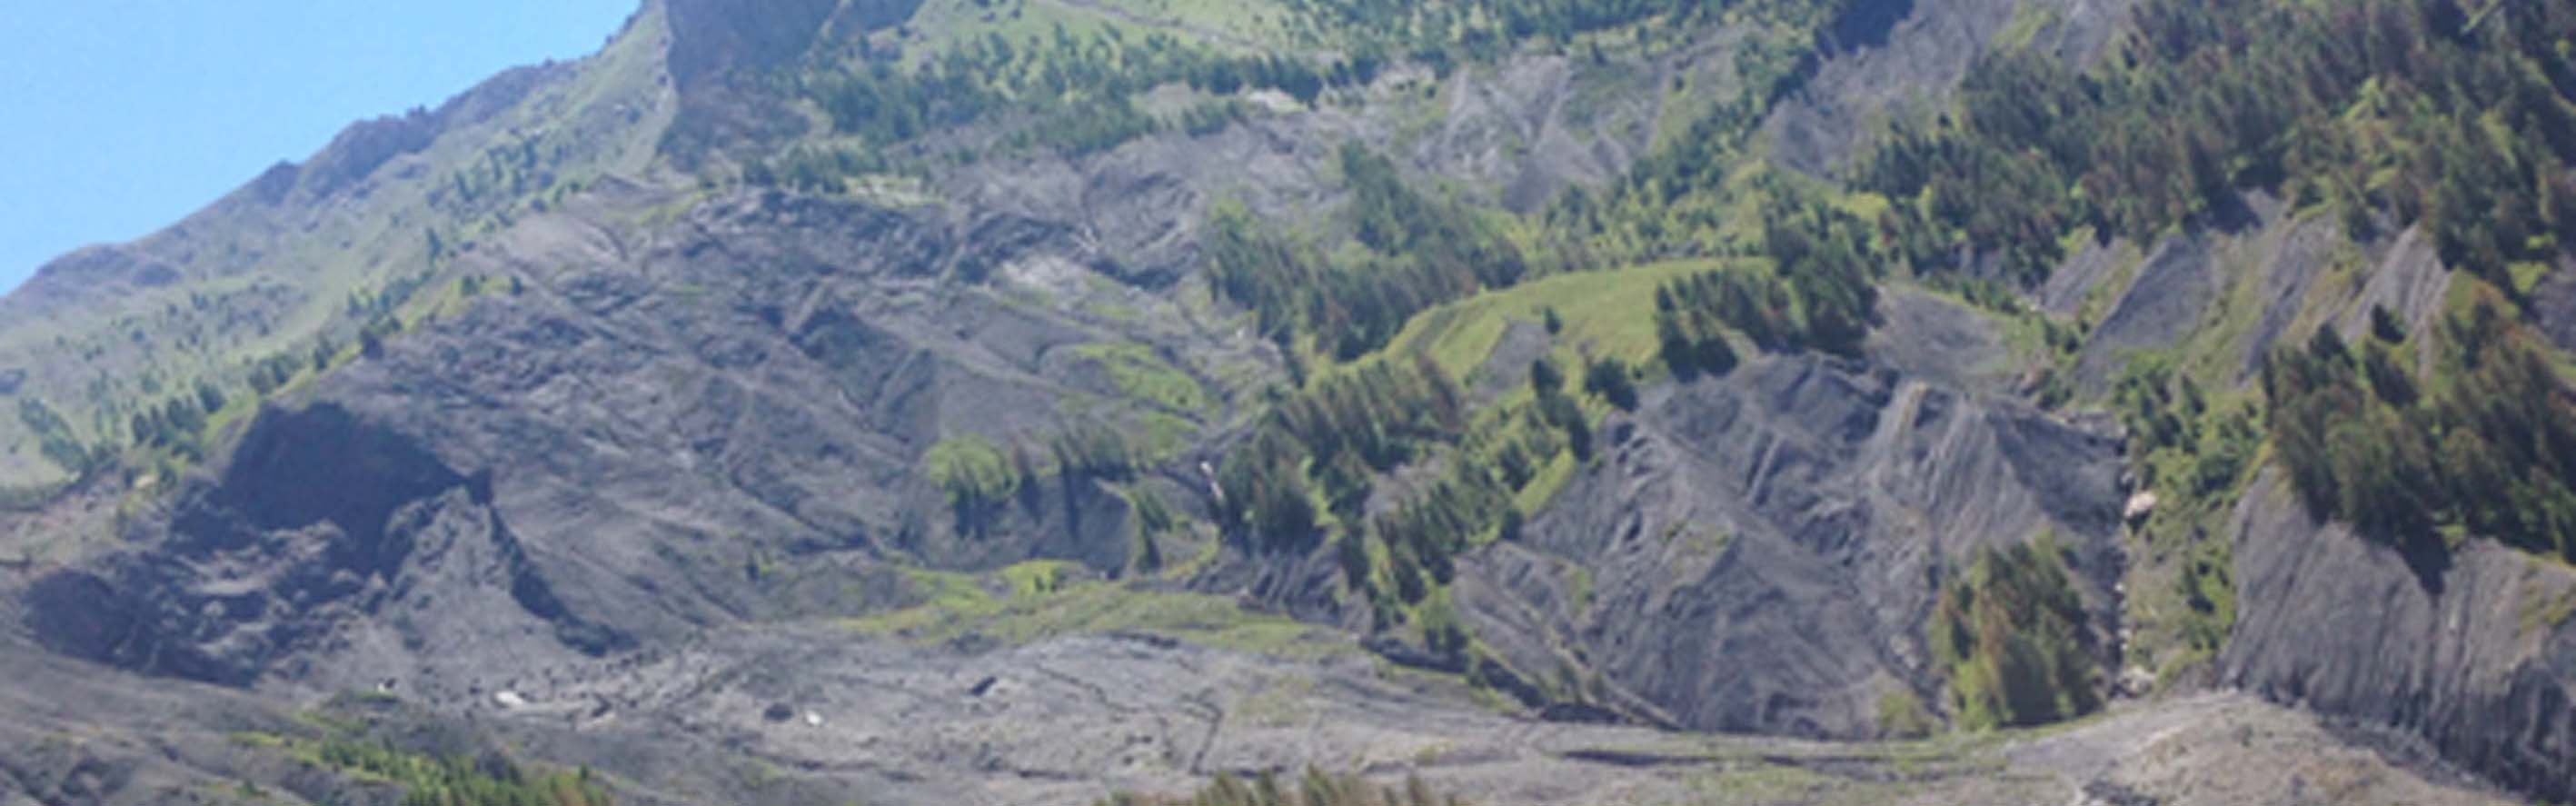 Super-Sauze landslide: view of the accumulation zone in 2016